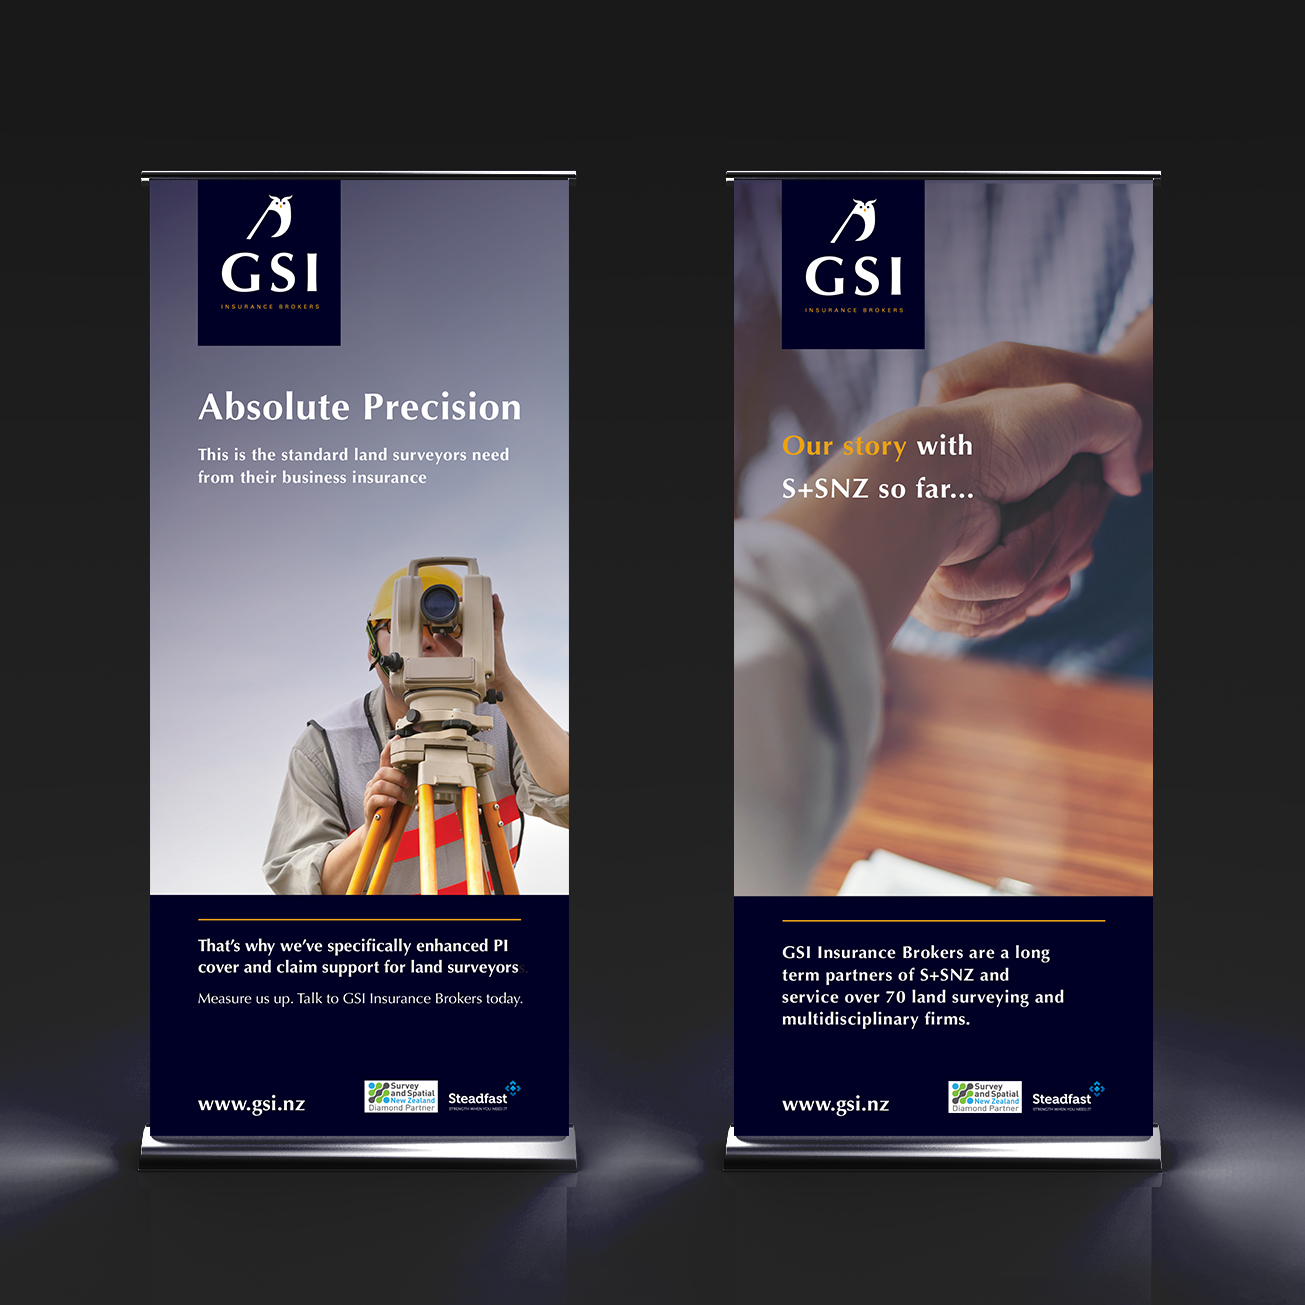 jfm-marketing-and-design-portfolio-project-signage-gsi-banner